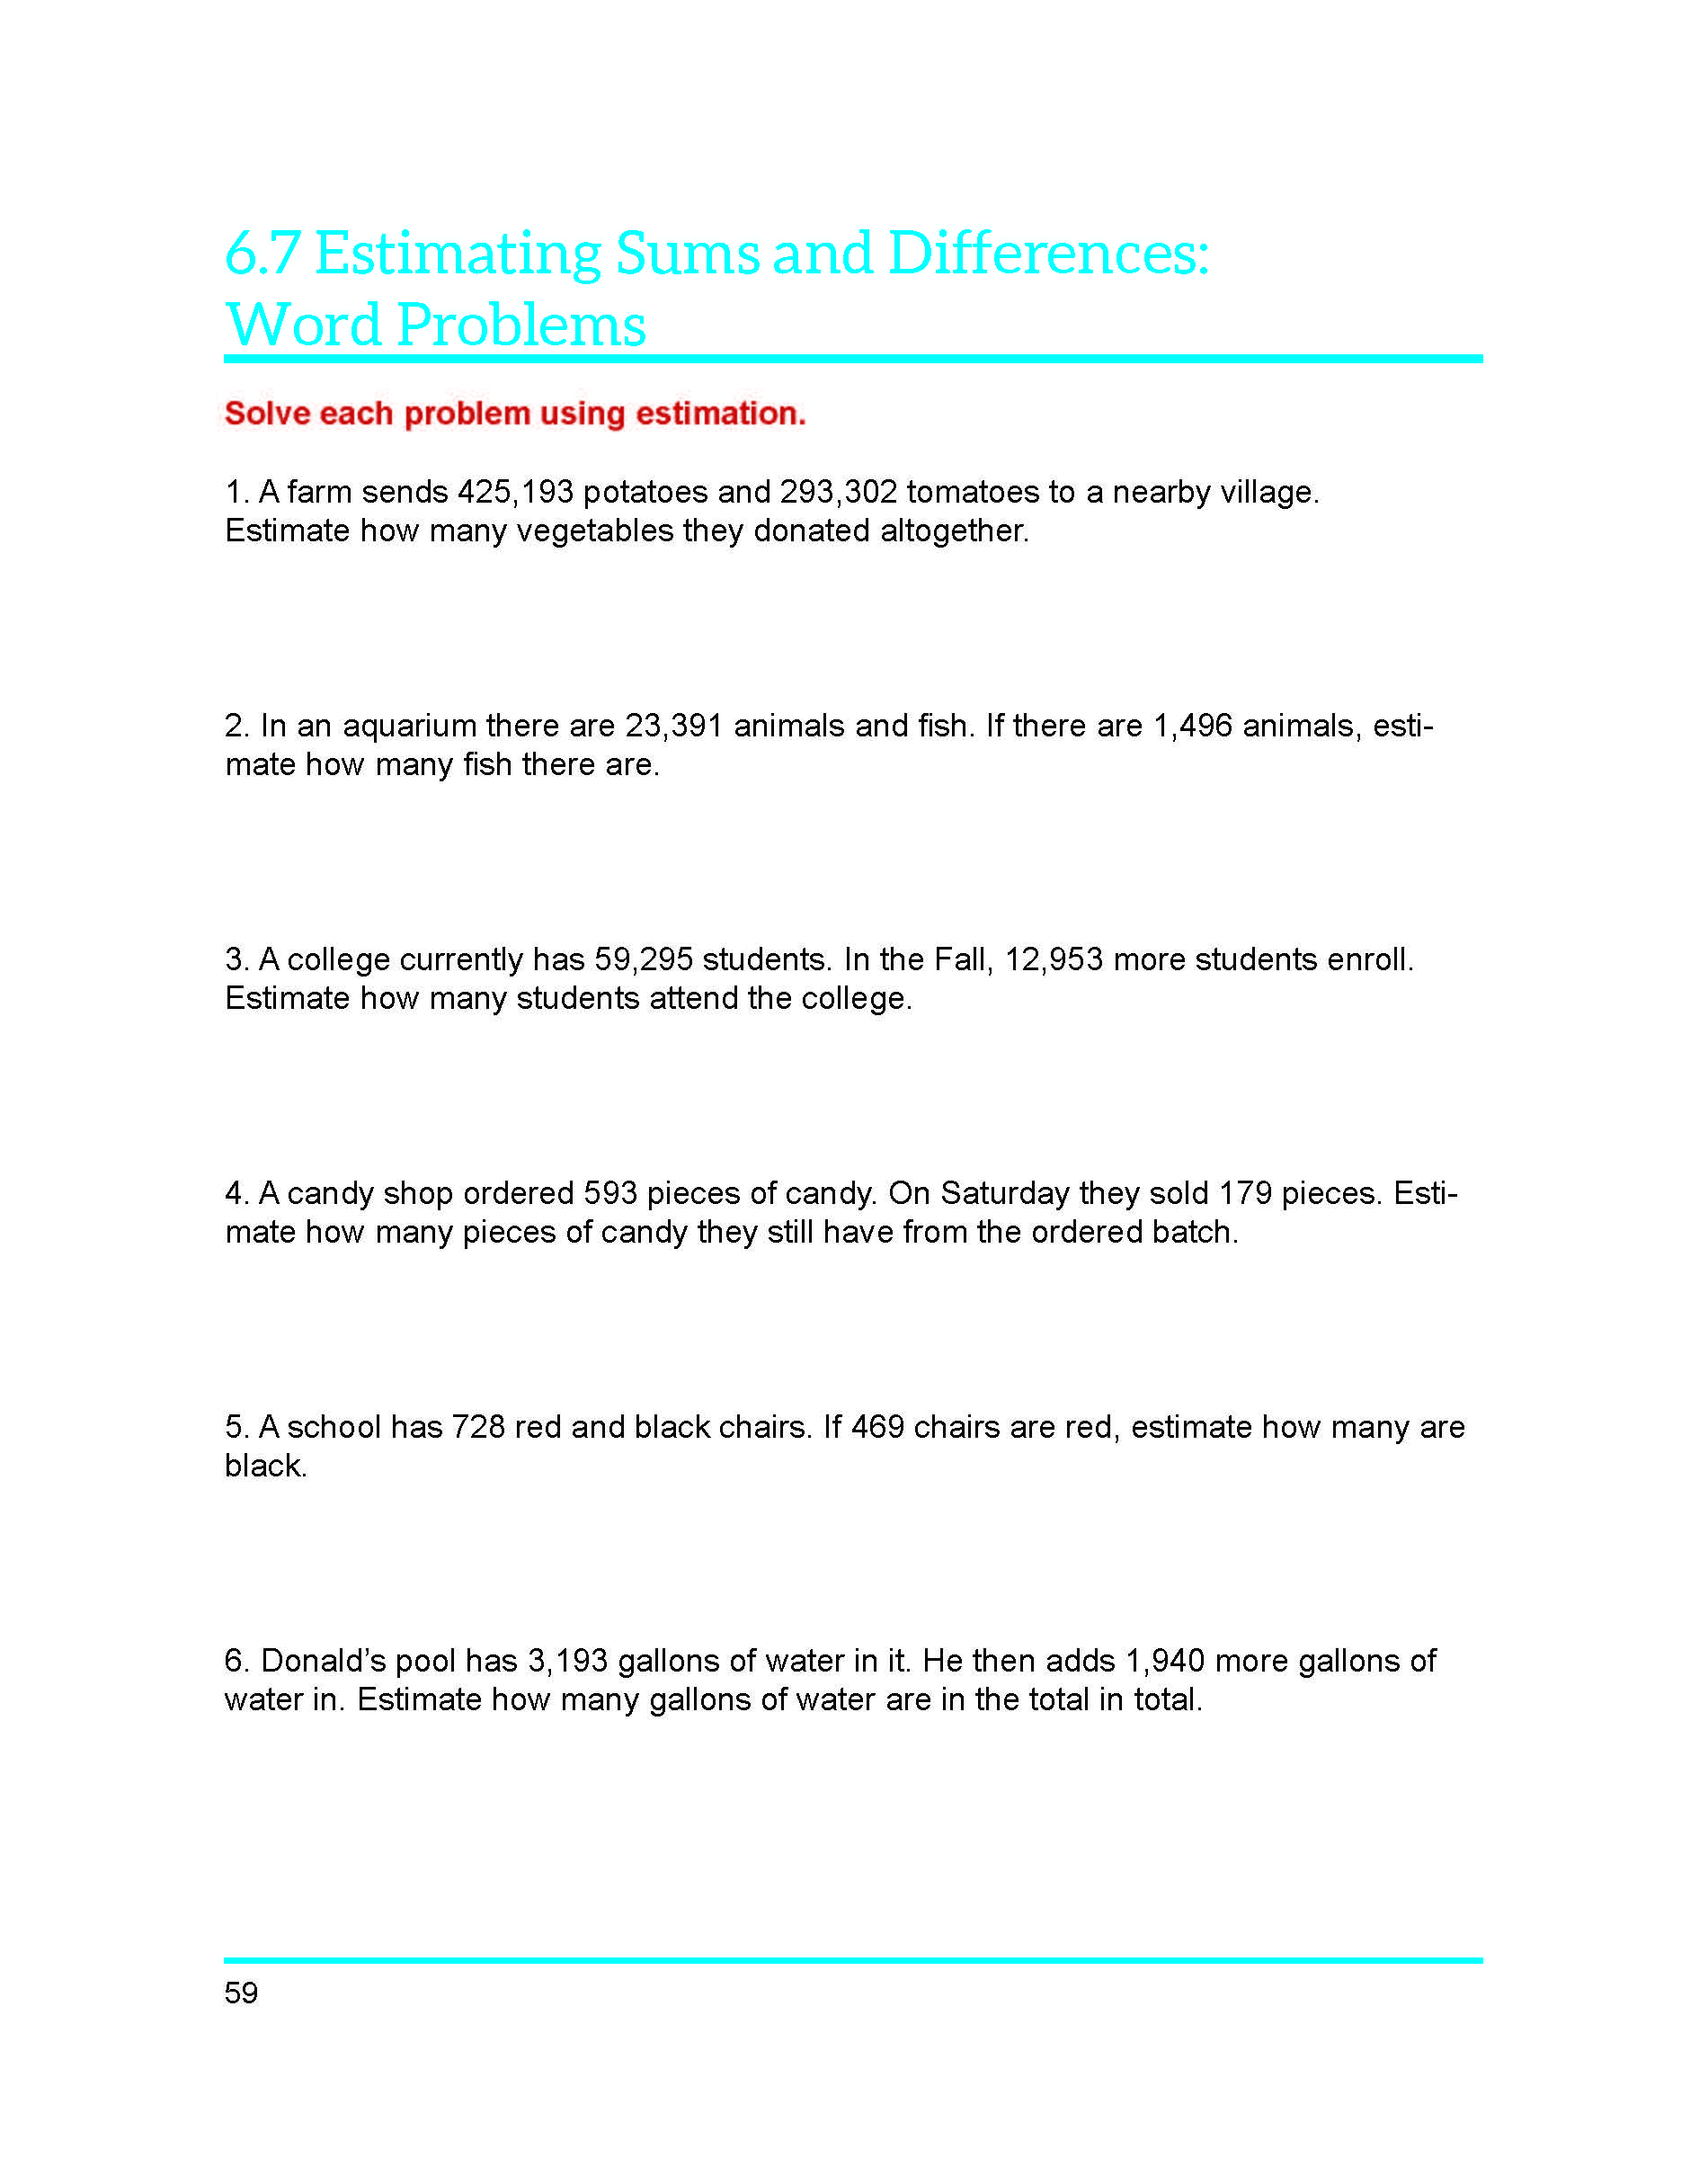 Grade-5-Estimating Sums-Differences-Word-Problems.jpg